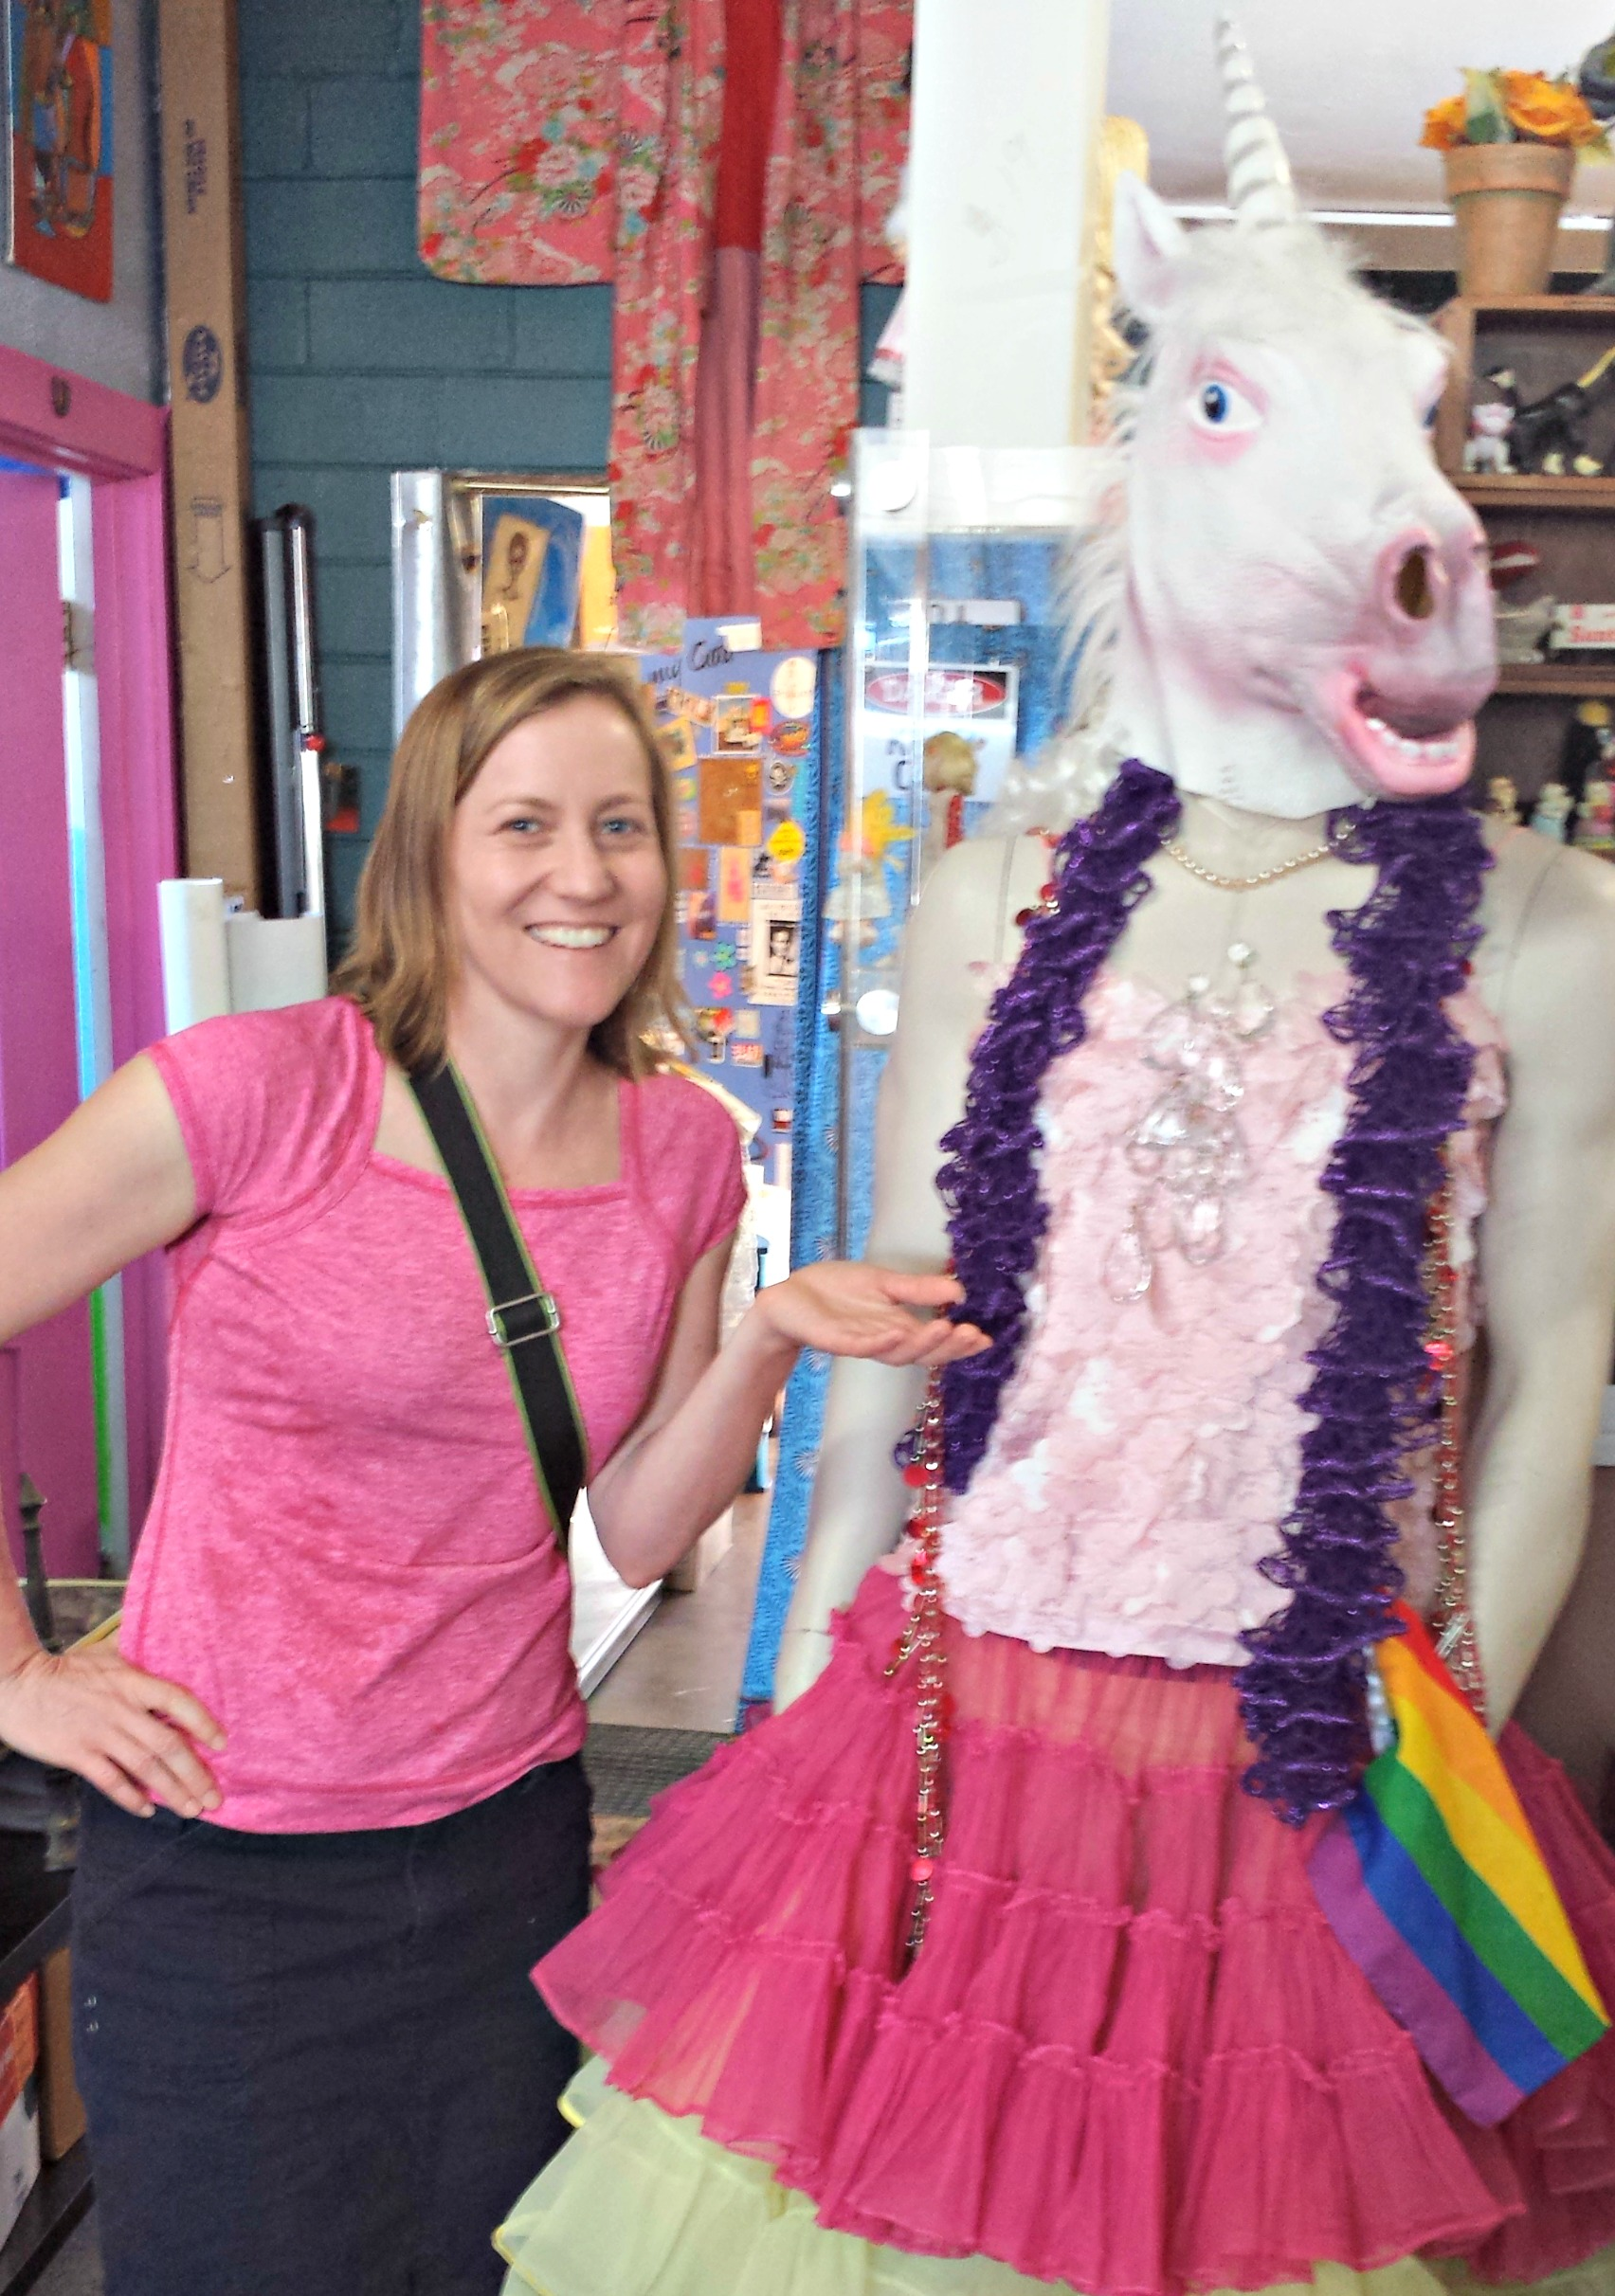 how to get unicorn costume quest